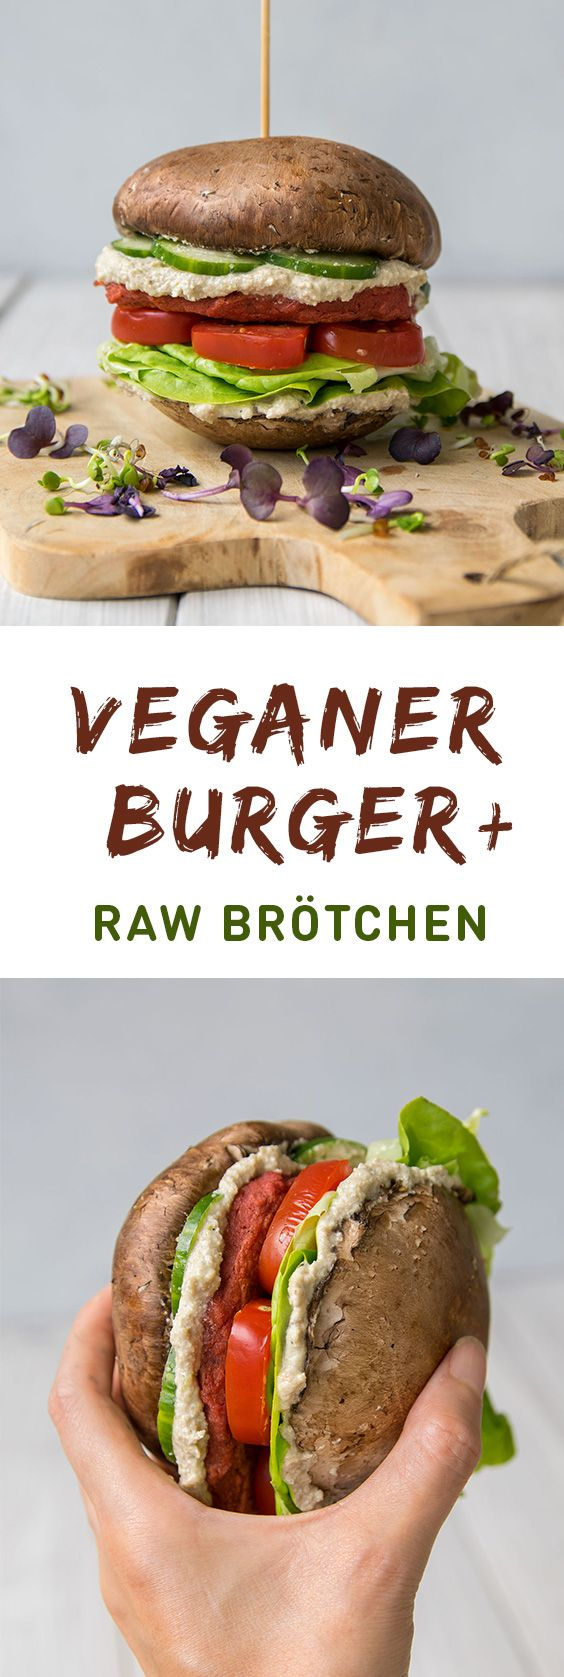 glutenfreie vegane burger yumm pinterest burger vegan und glutenfrei. Black Bedroom Furniture Sets. Home Design Ideas